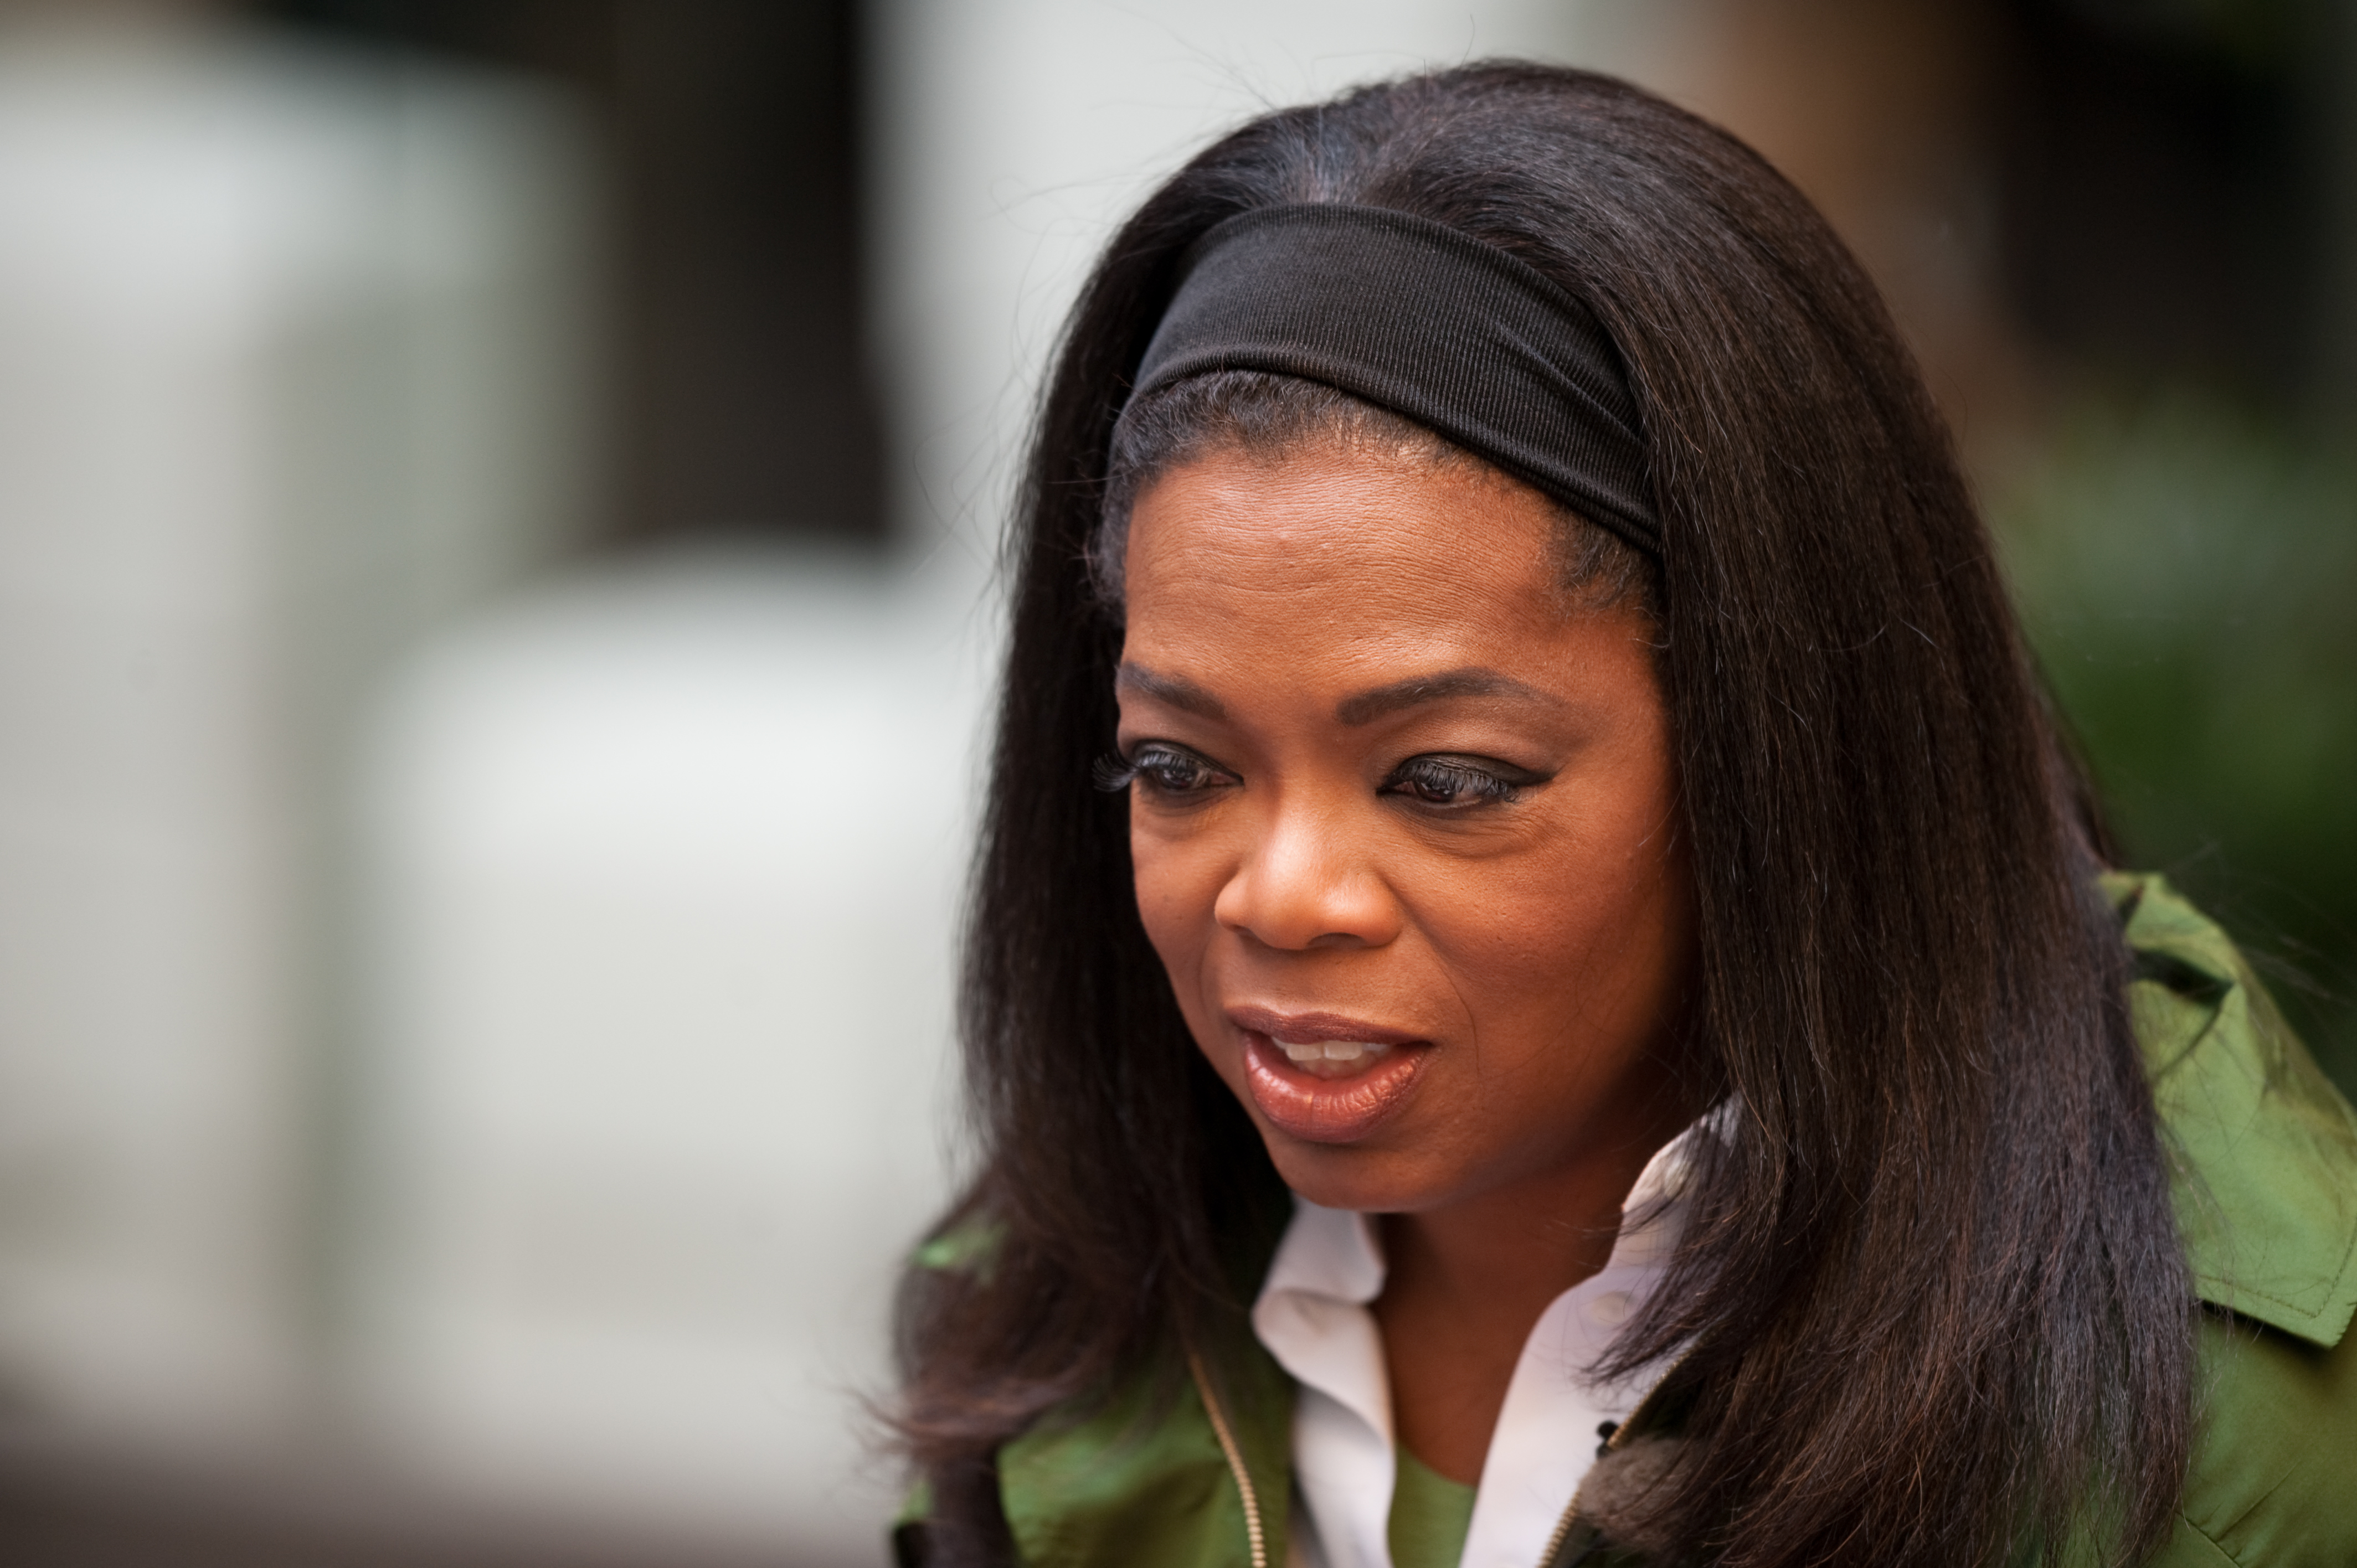 Description Oprah Winfrey in Strøget, Denmark on 30 September 2009